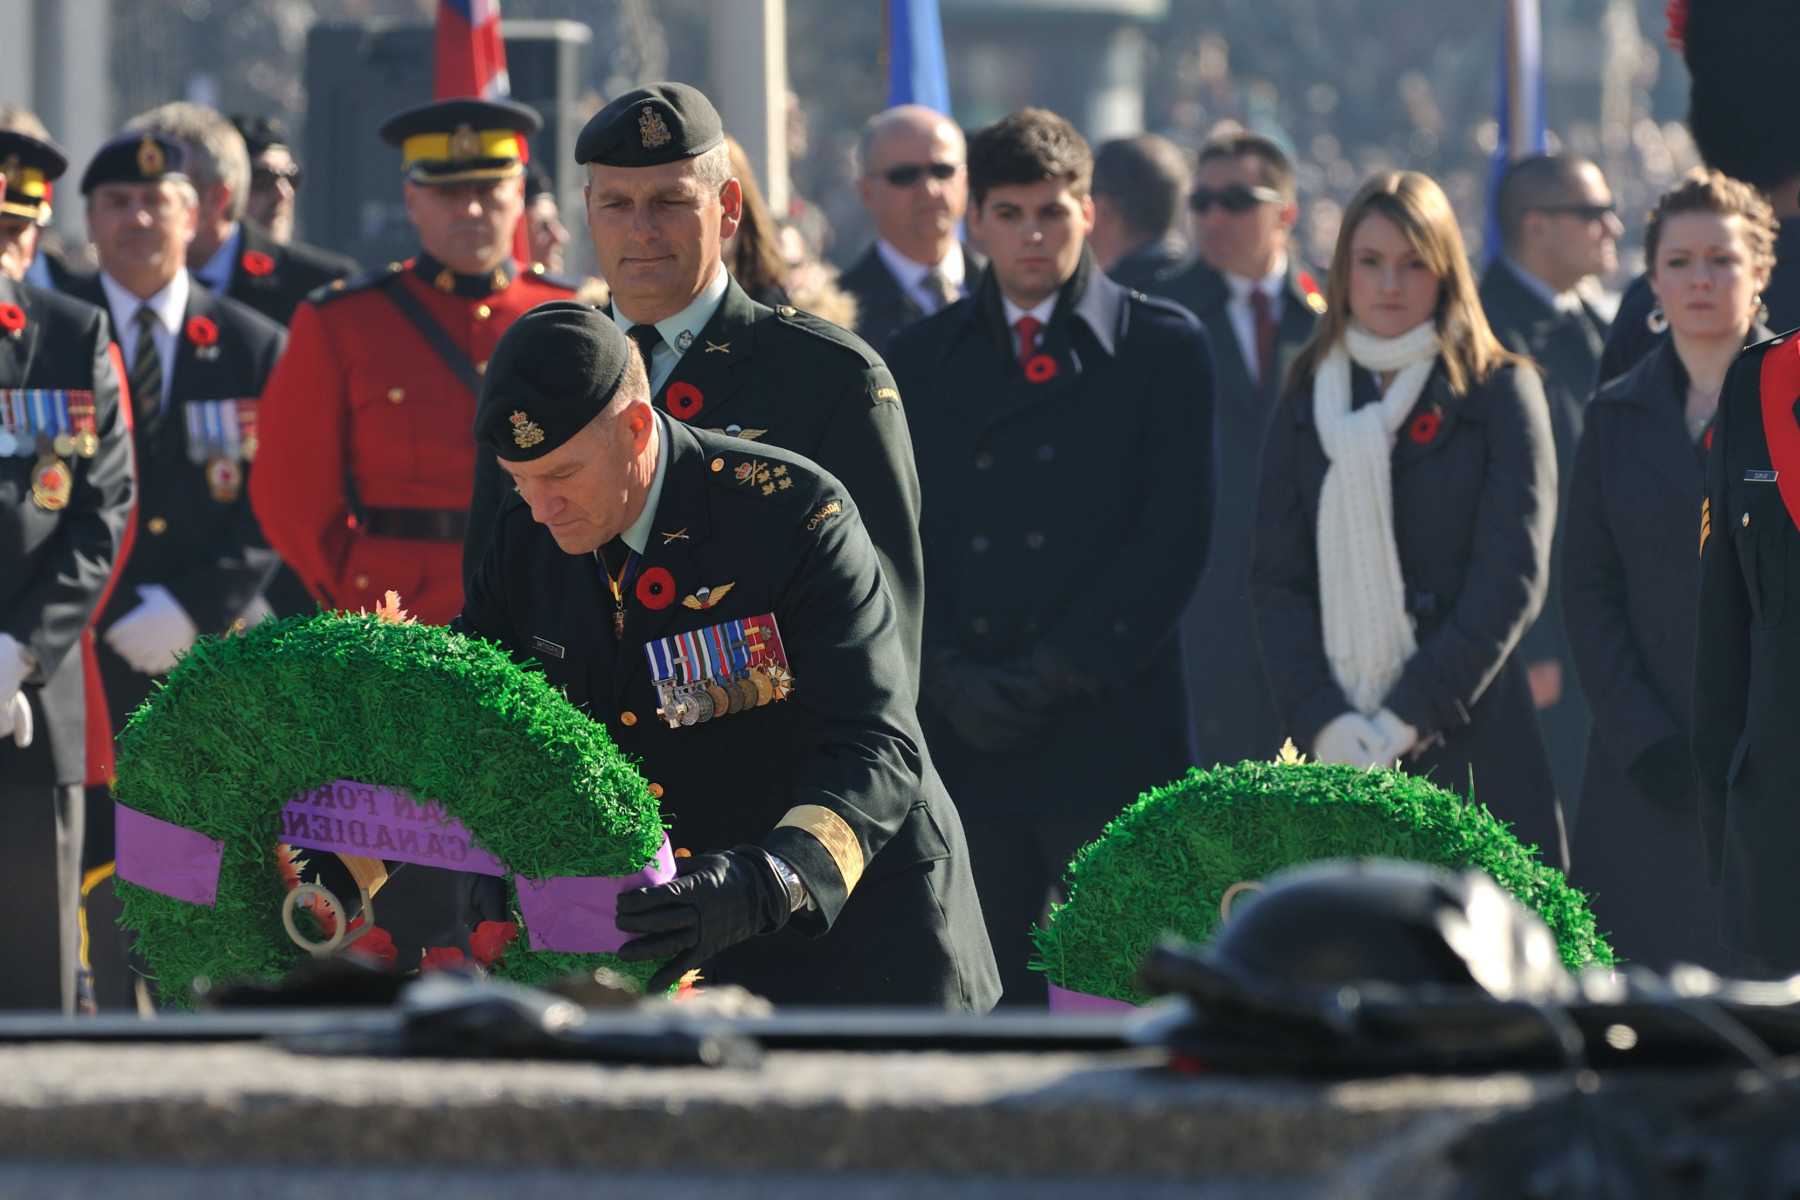 General Walter Natynczyk, Chief of the Defence Staff along with Canadian Forces Chief Warrant Officer Greg Lacroix also laid a wreath during the Ceremony.